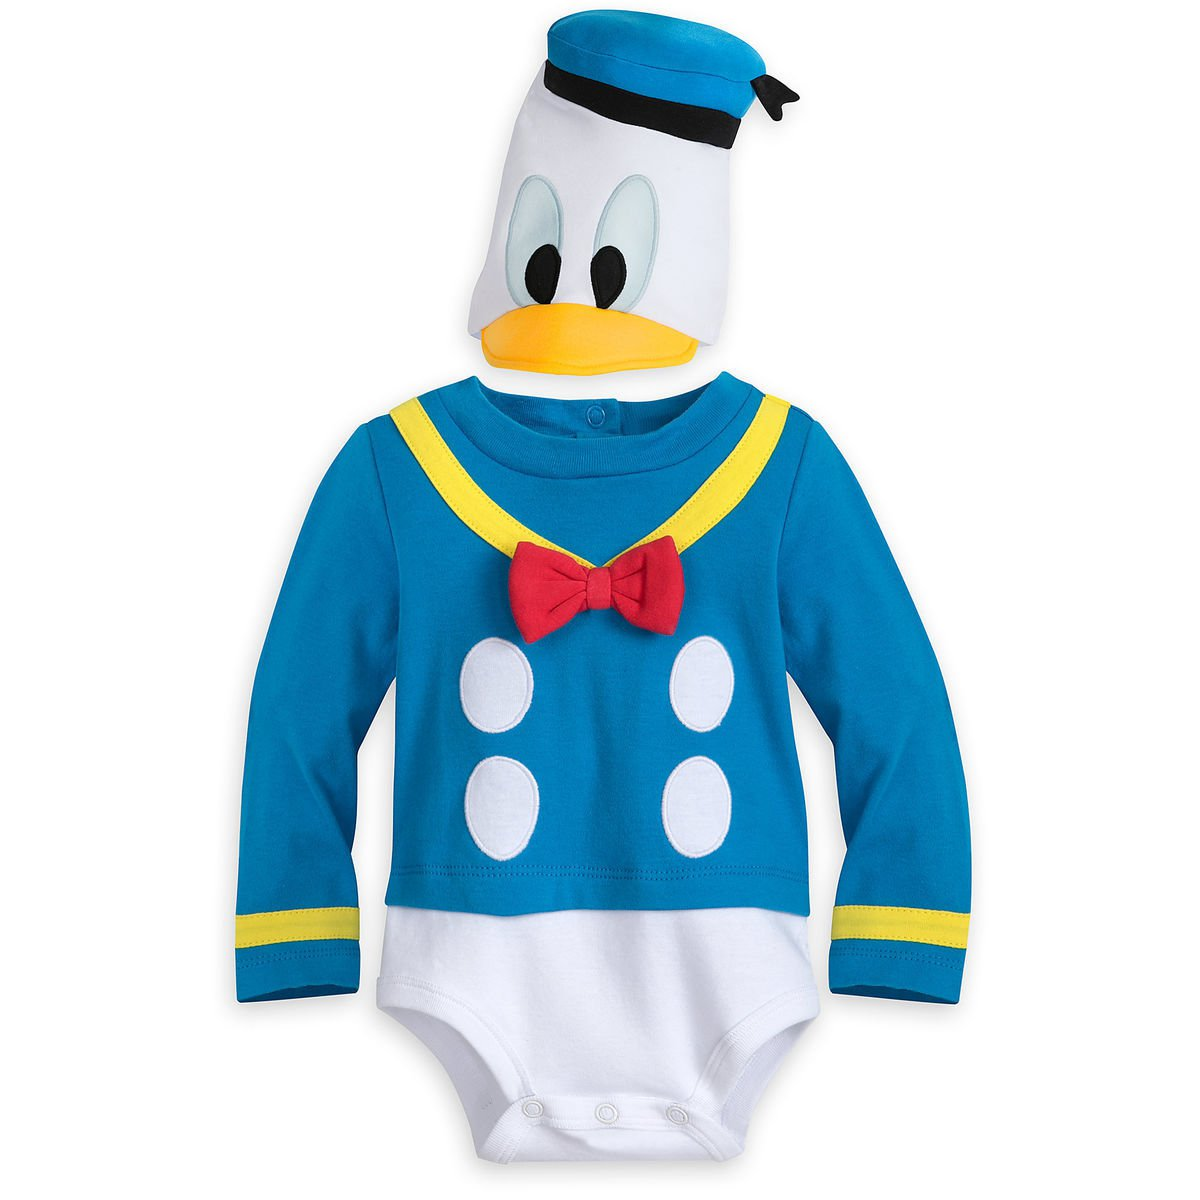 Disney Store Donald Duck Baby Costume Bodysuit Hat 18-24 Months 2018 New